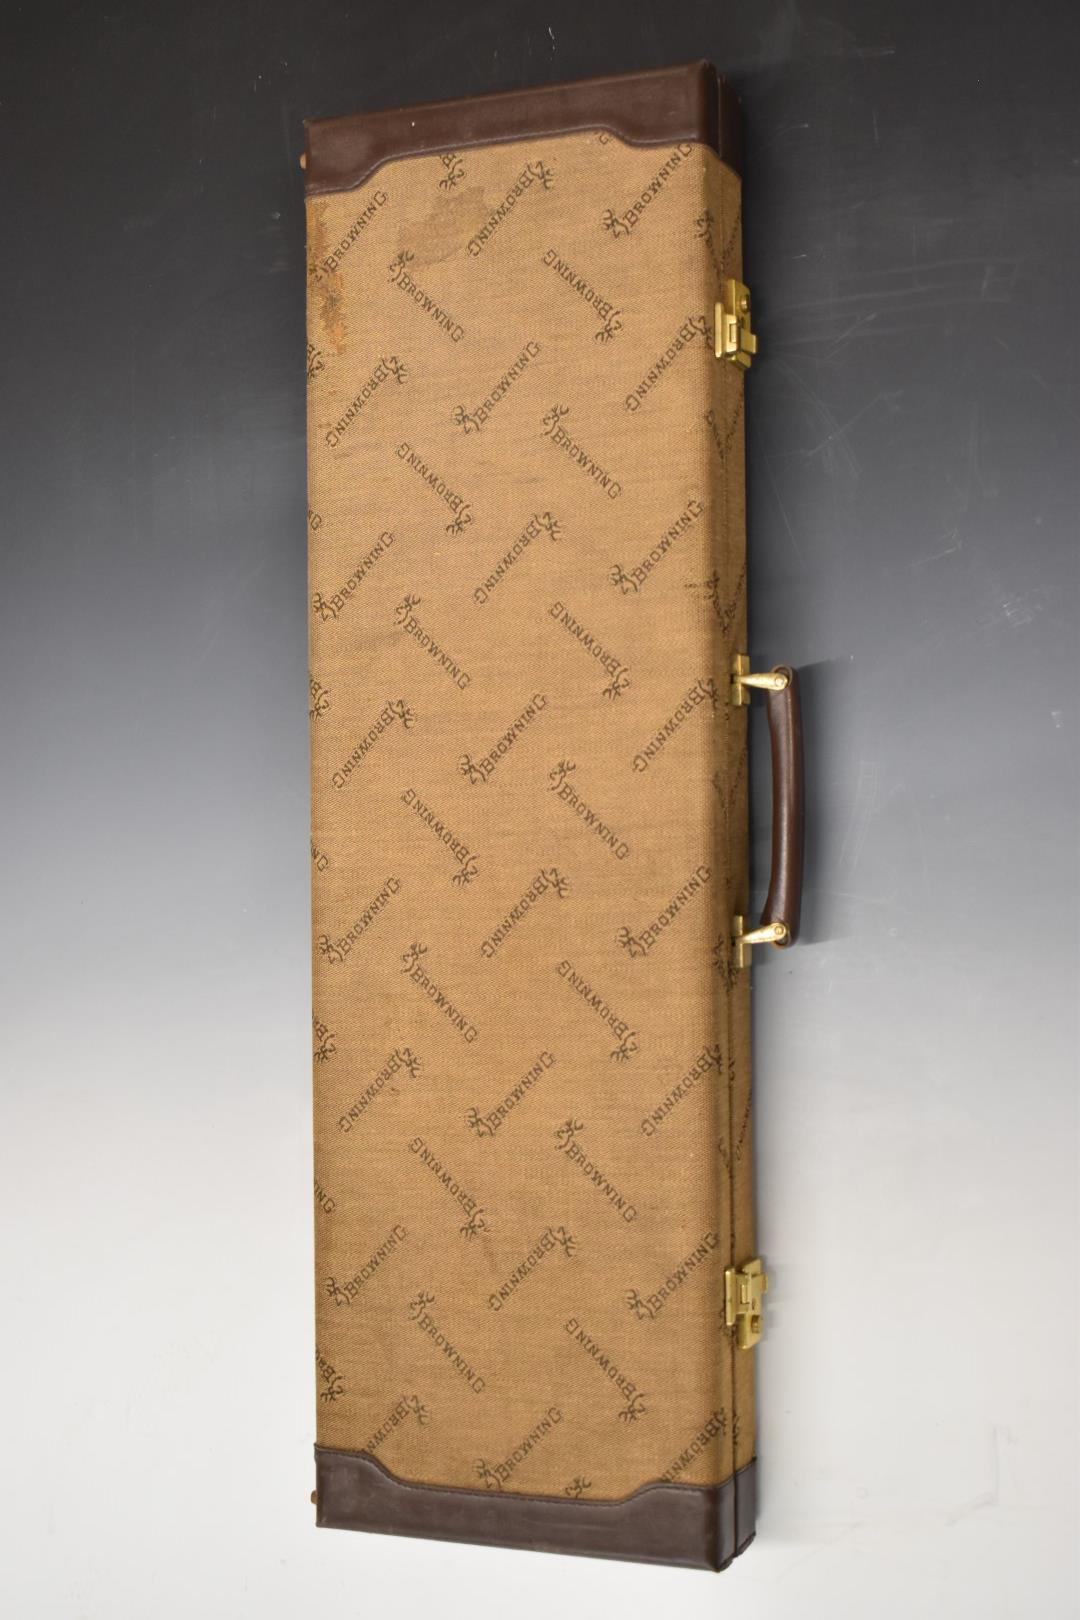 Browning canvas and leather gun case with brass locks, carry handle, padded suede interior and